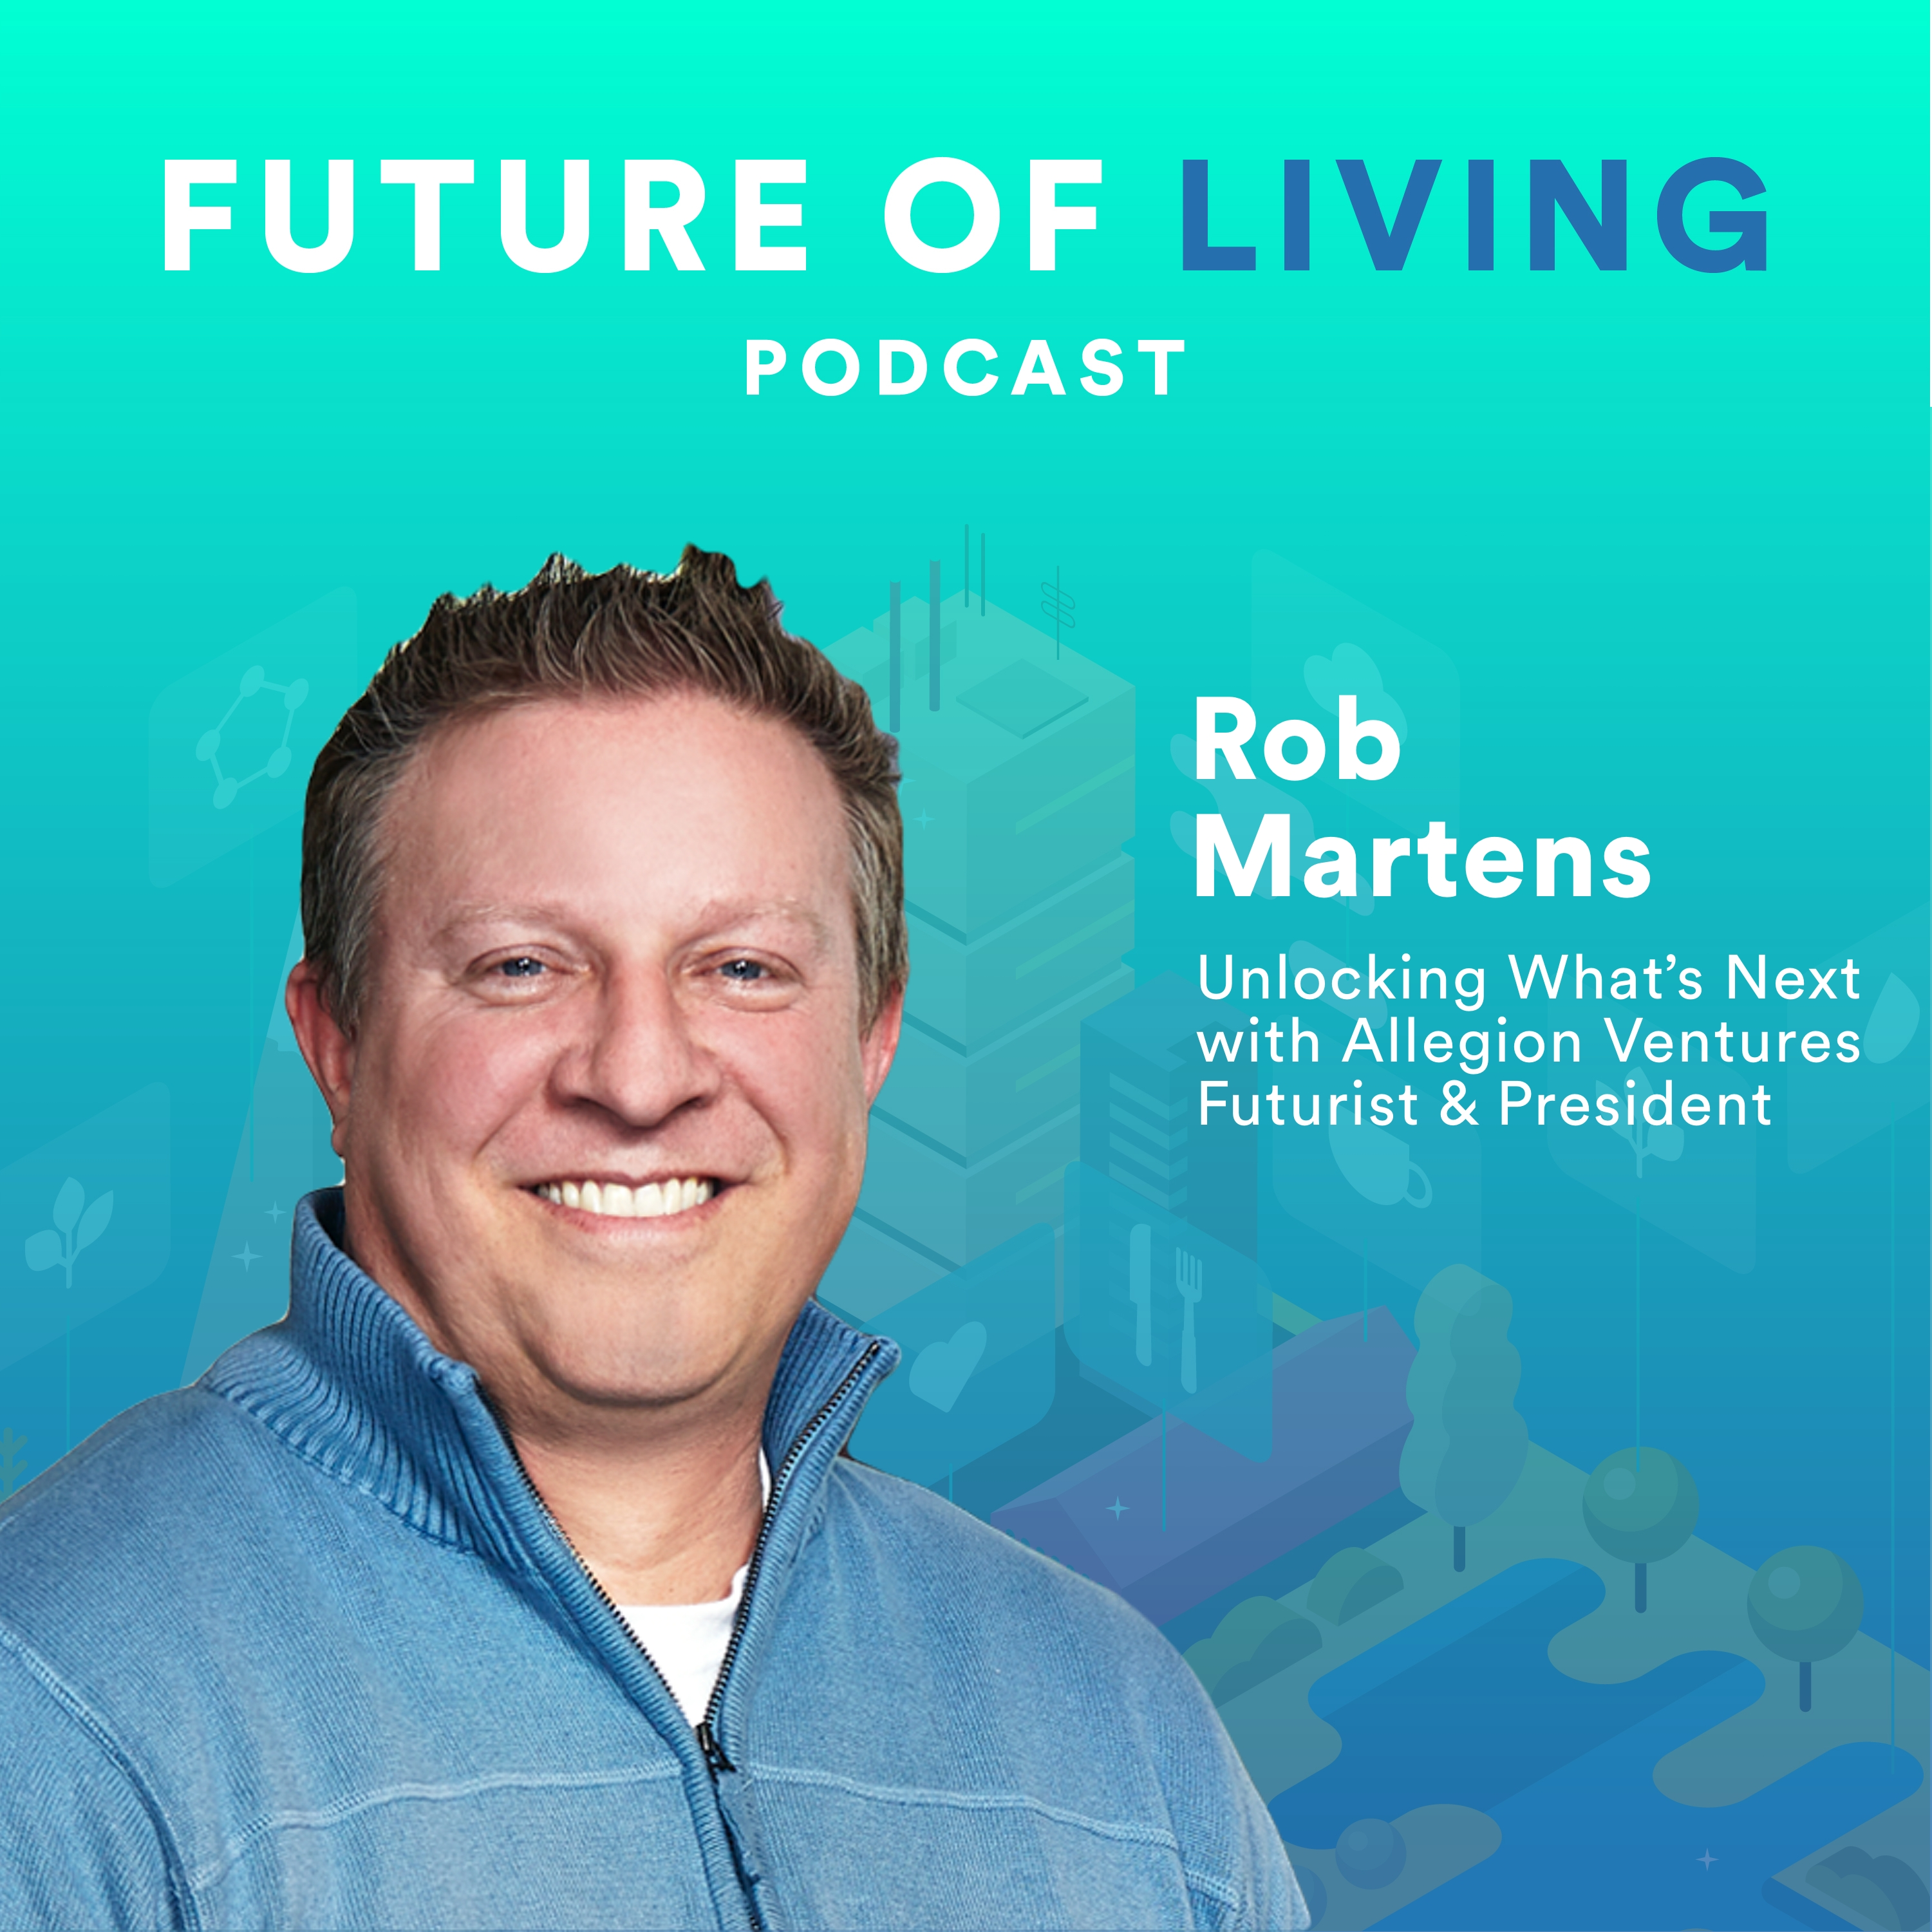 Rob Martens on The Future of Living Podcast with Blake Miller